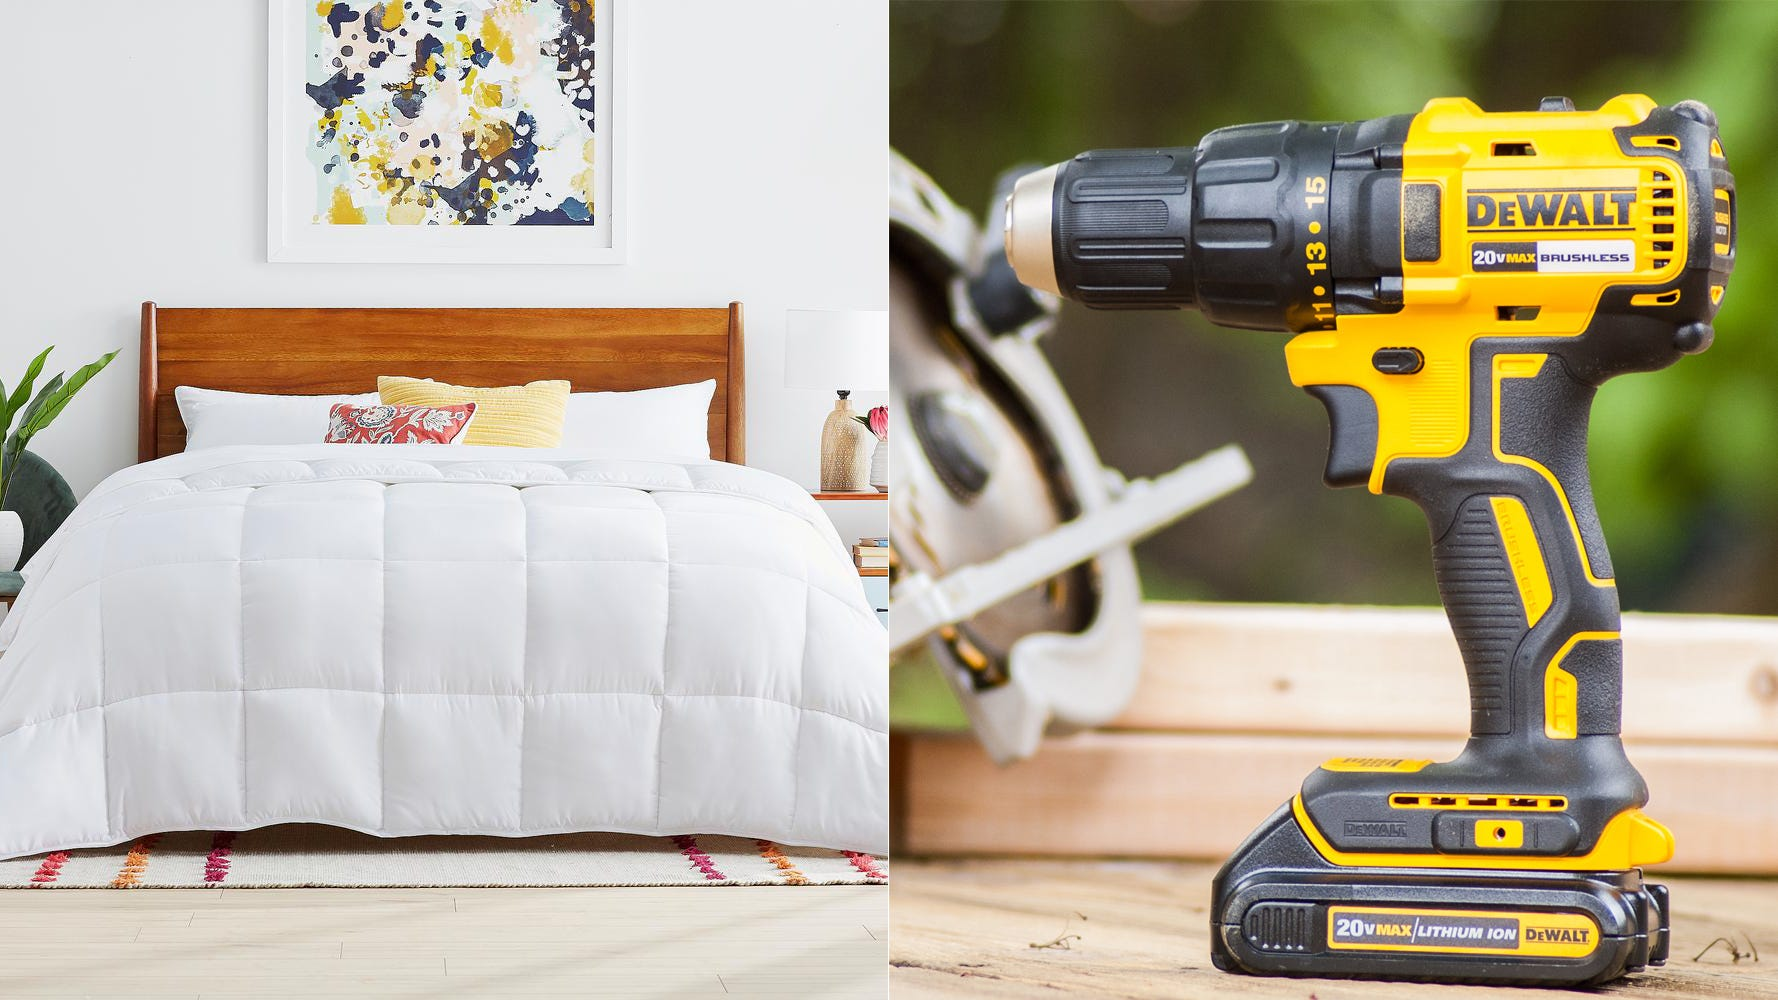 14 impressive deals you can still get in The Home Depotu0027s spring sale & Home Depot sale: 14 amazing deals from Spring Black Friday to grab now